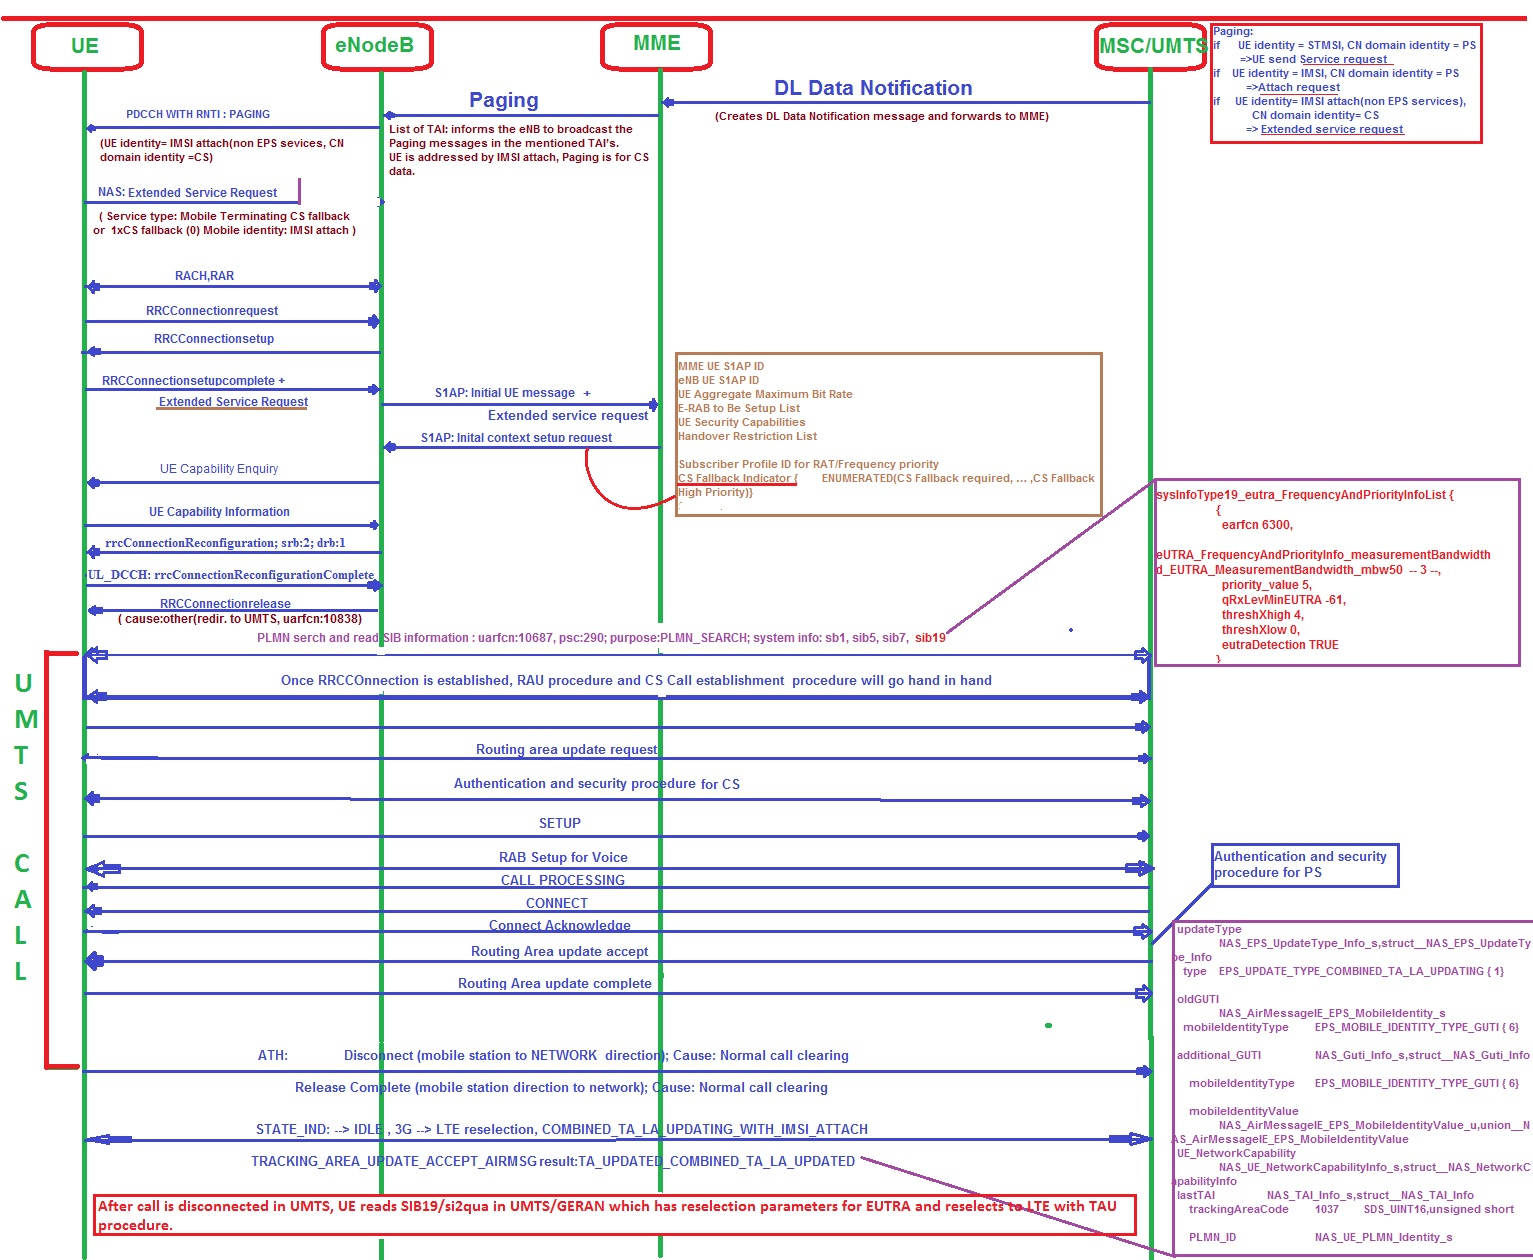 Umts Network Architecture Diagram Viper 5900 Wiring Csfb Call Flow In Lte Tweet4technology